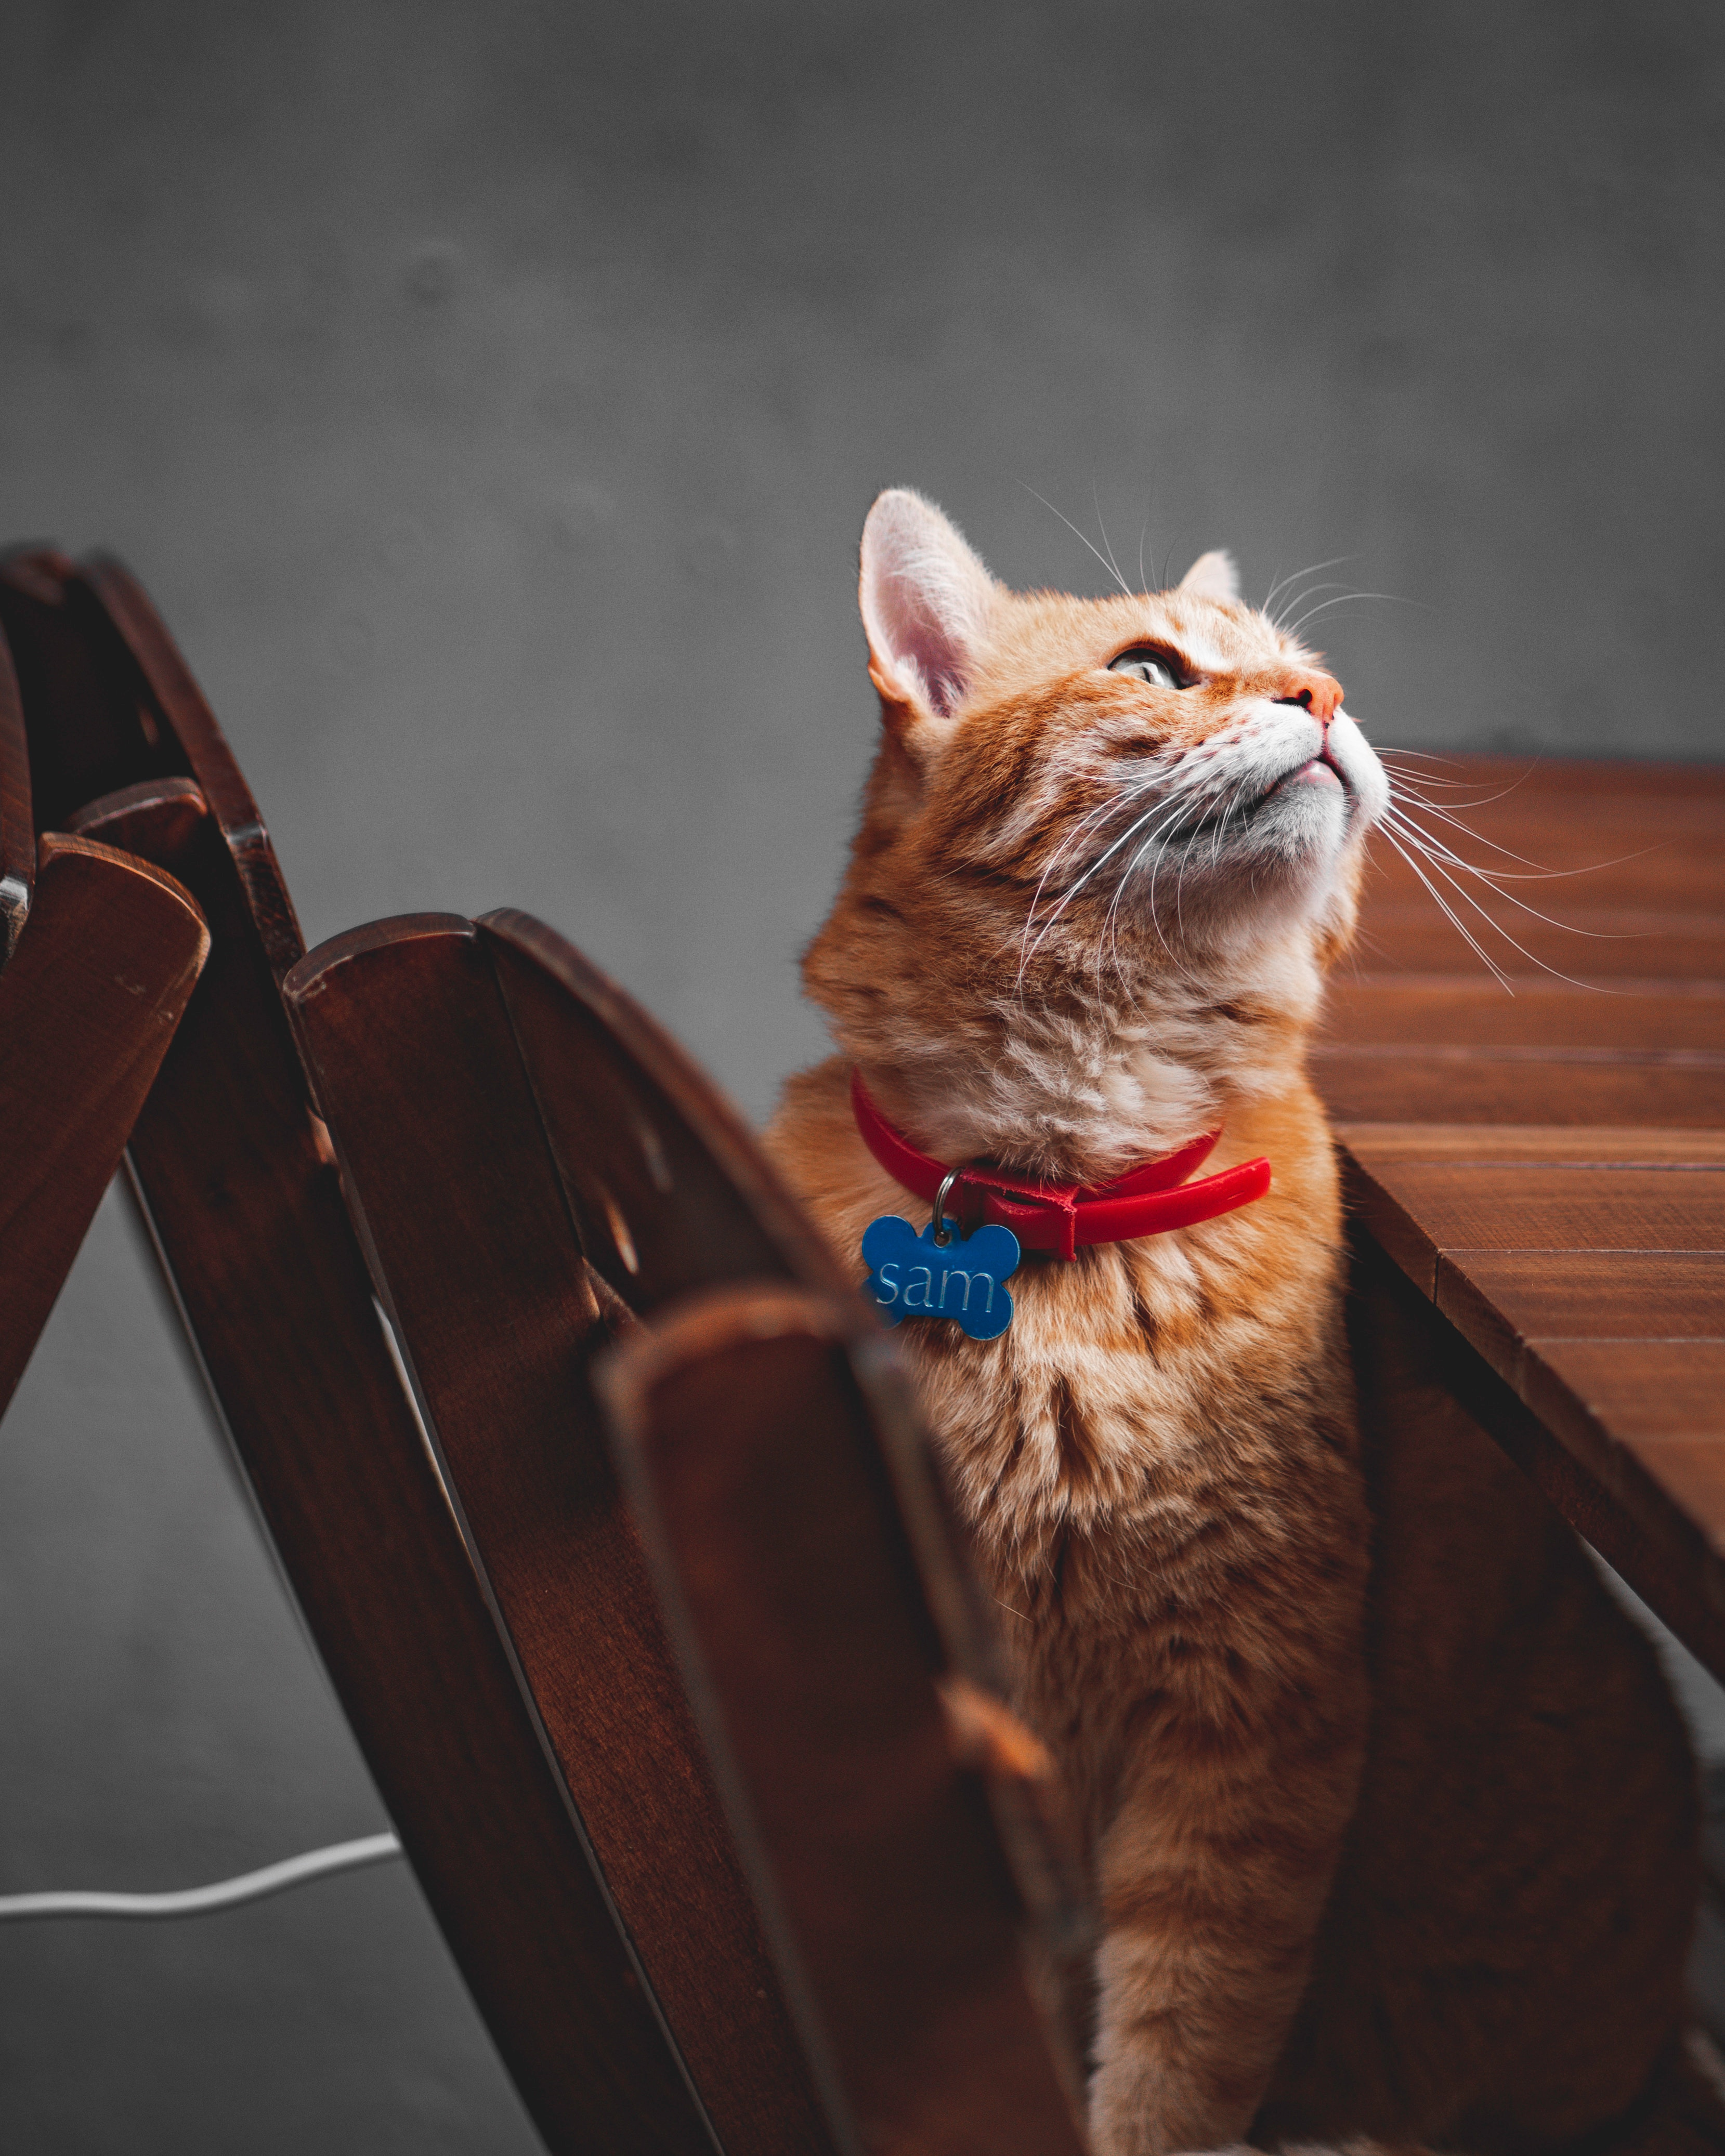 70797 download wallpaper Animals, Cat, Redhead, Sight, Opinion, Pet, Collar screensavers and pictures for free